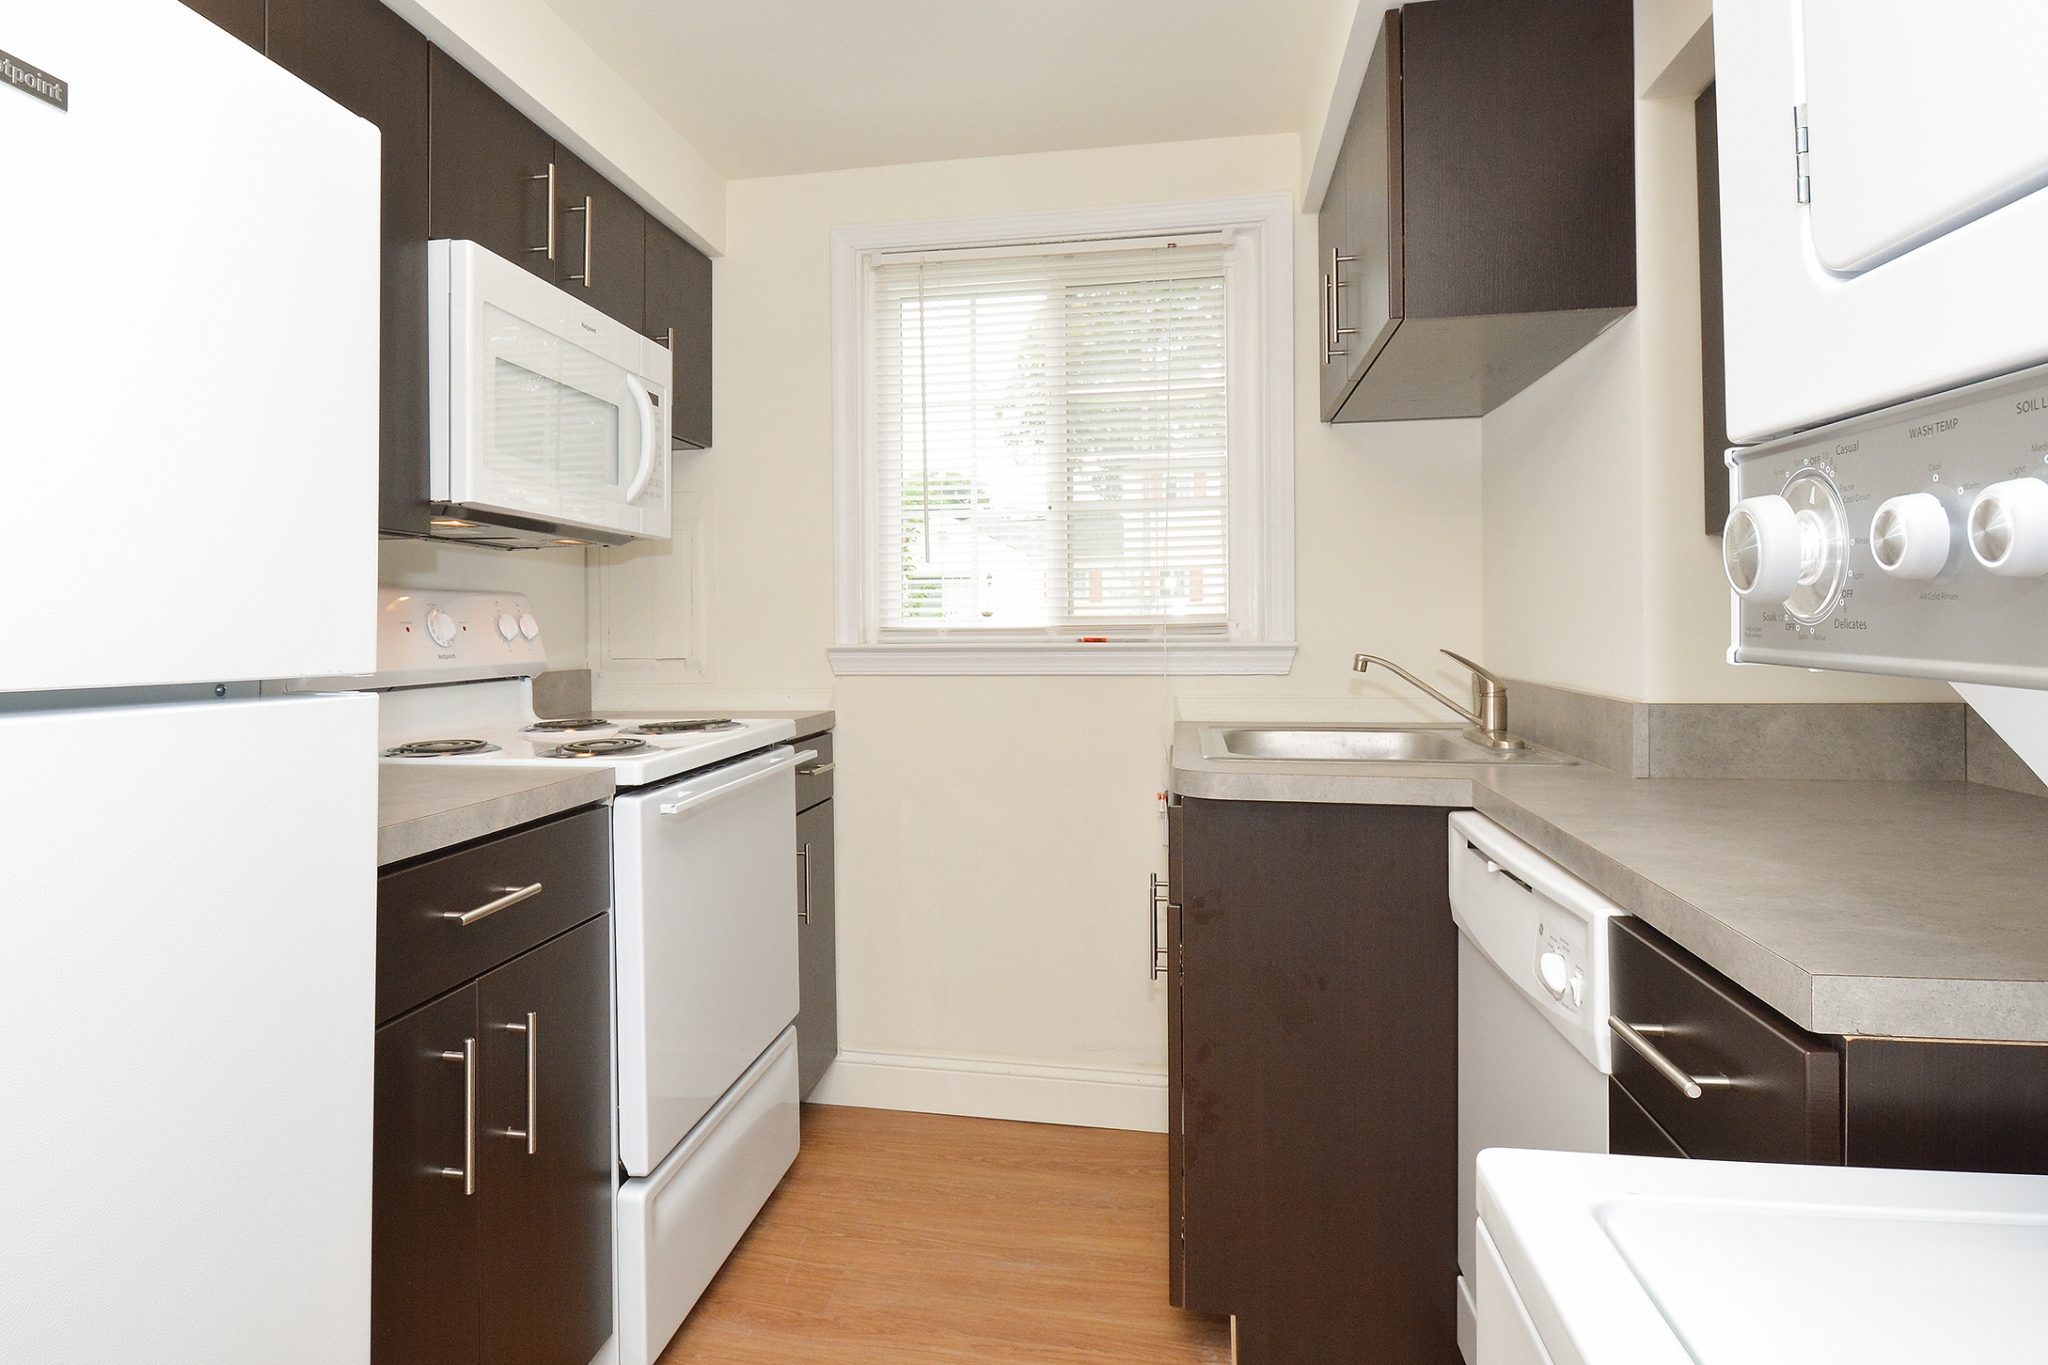 Elegant Kitchen | Apartments in Wilmington, DE | Greenville on 141 Apartments  Townhomes